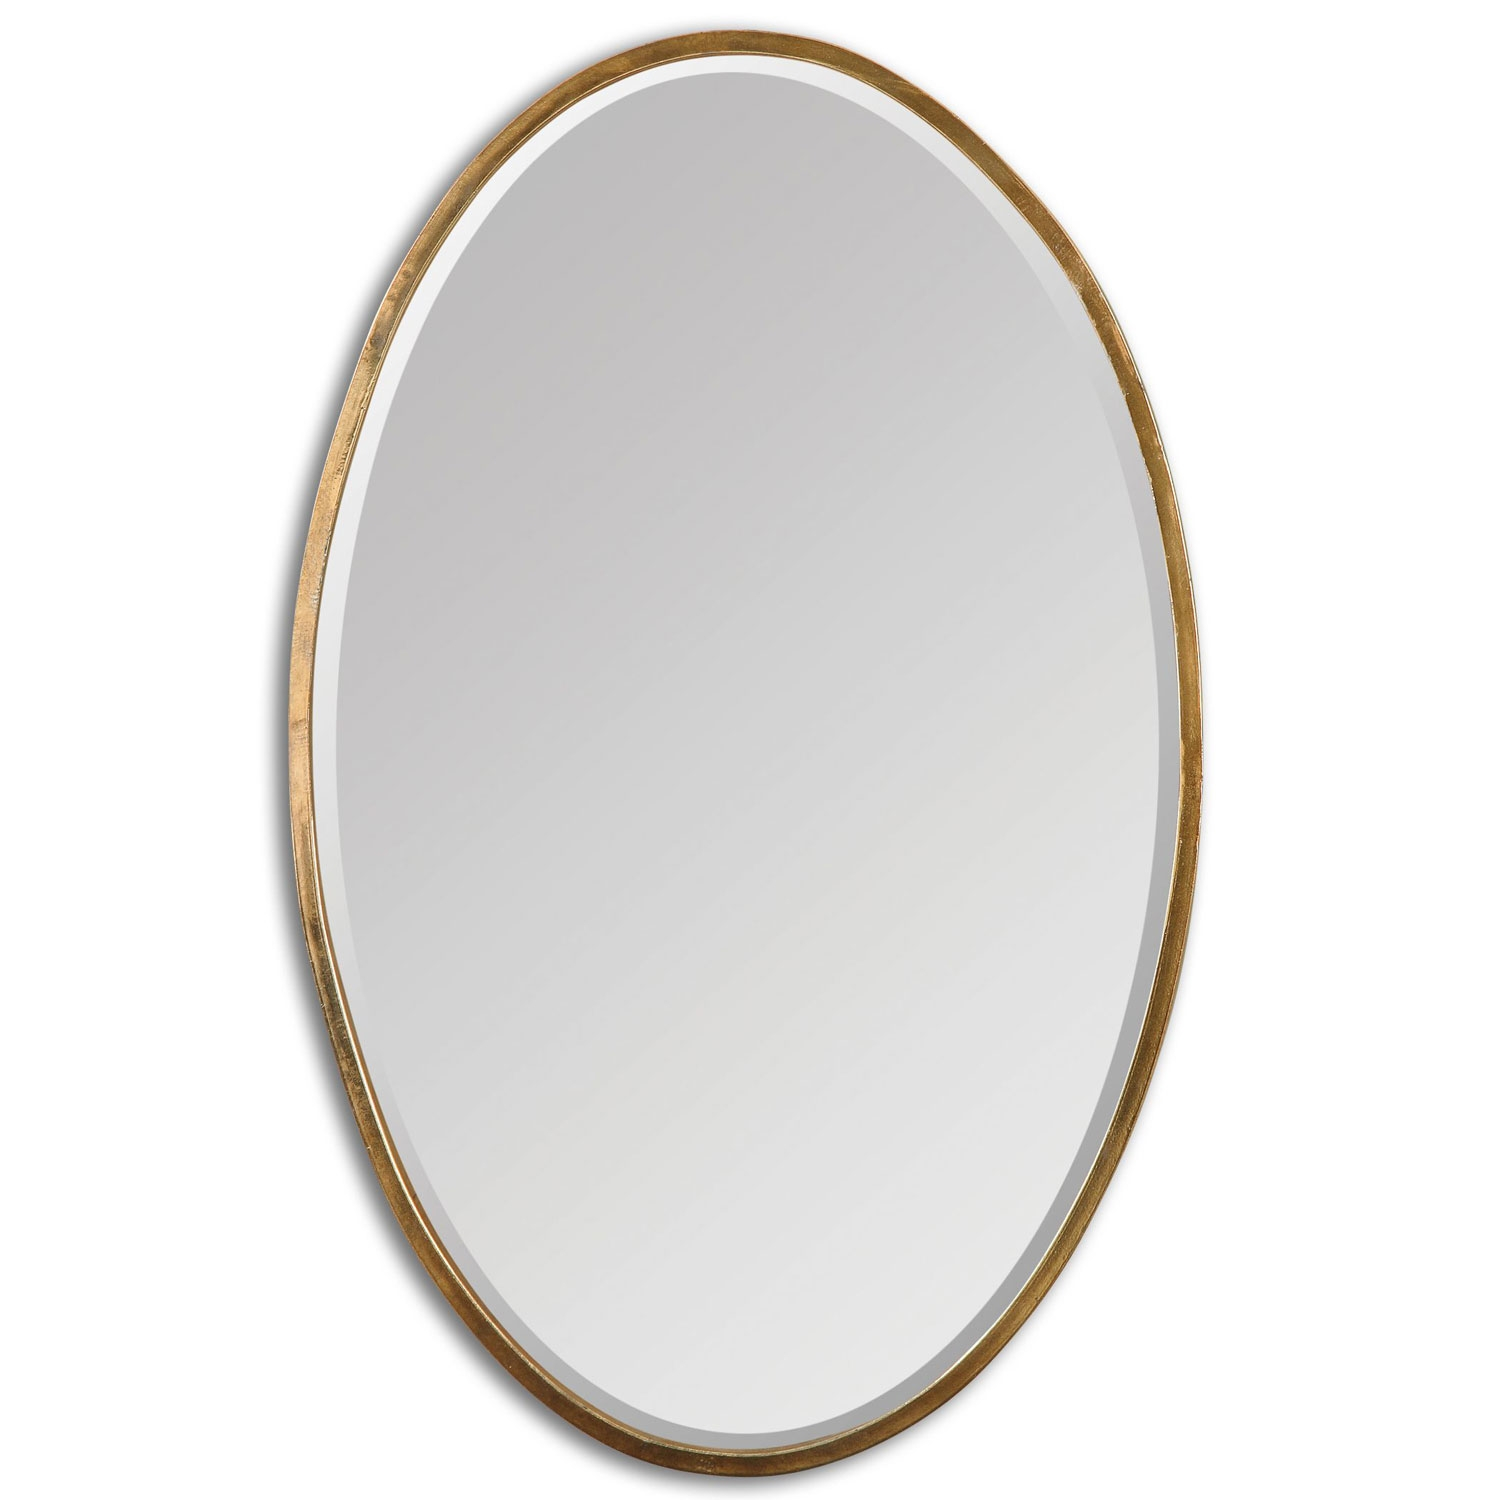 Oval Wall Mirrors 270 Kitchen Bathroom Frameless Vanity Options With Oval Wall Mirrors (Image 9 of 15)